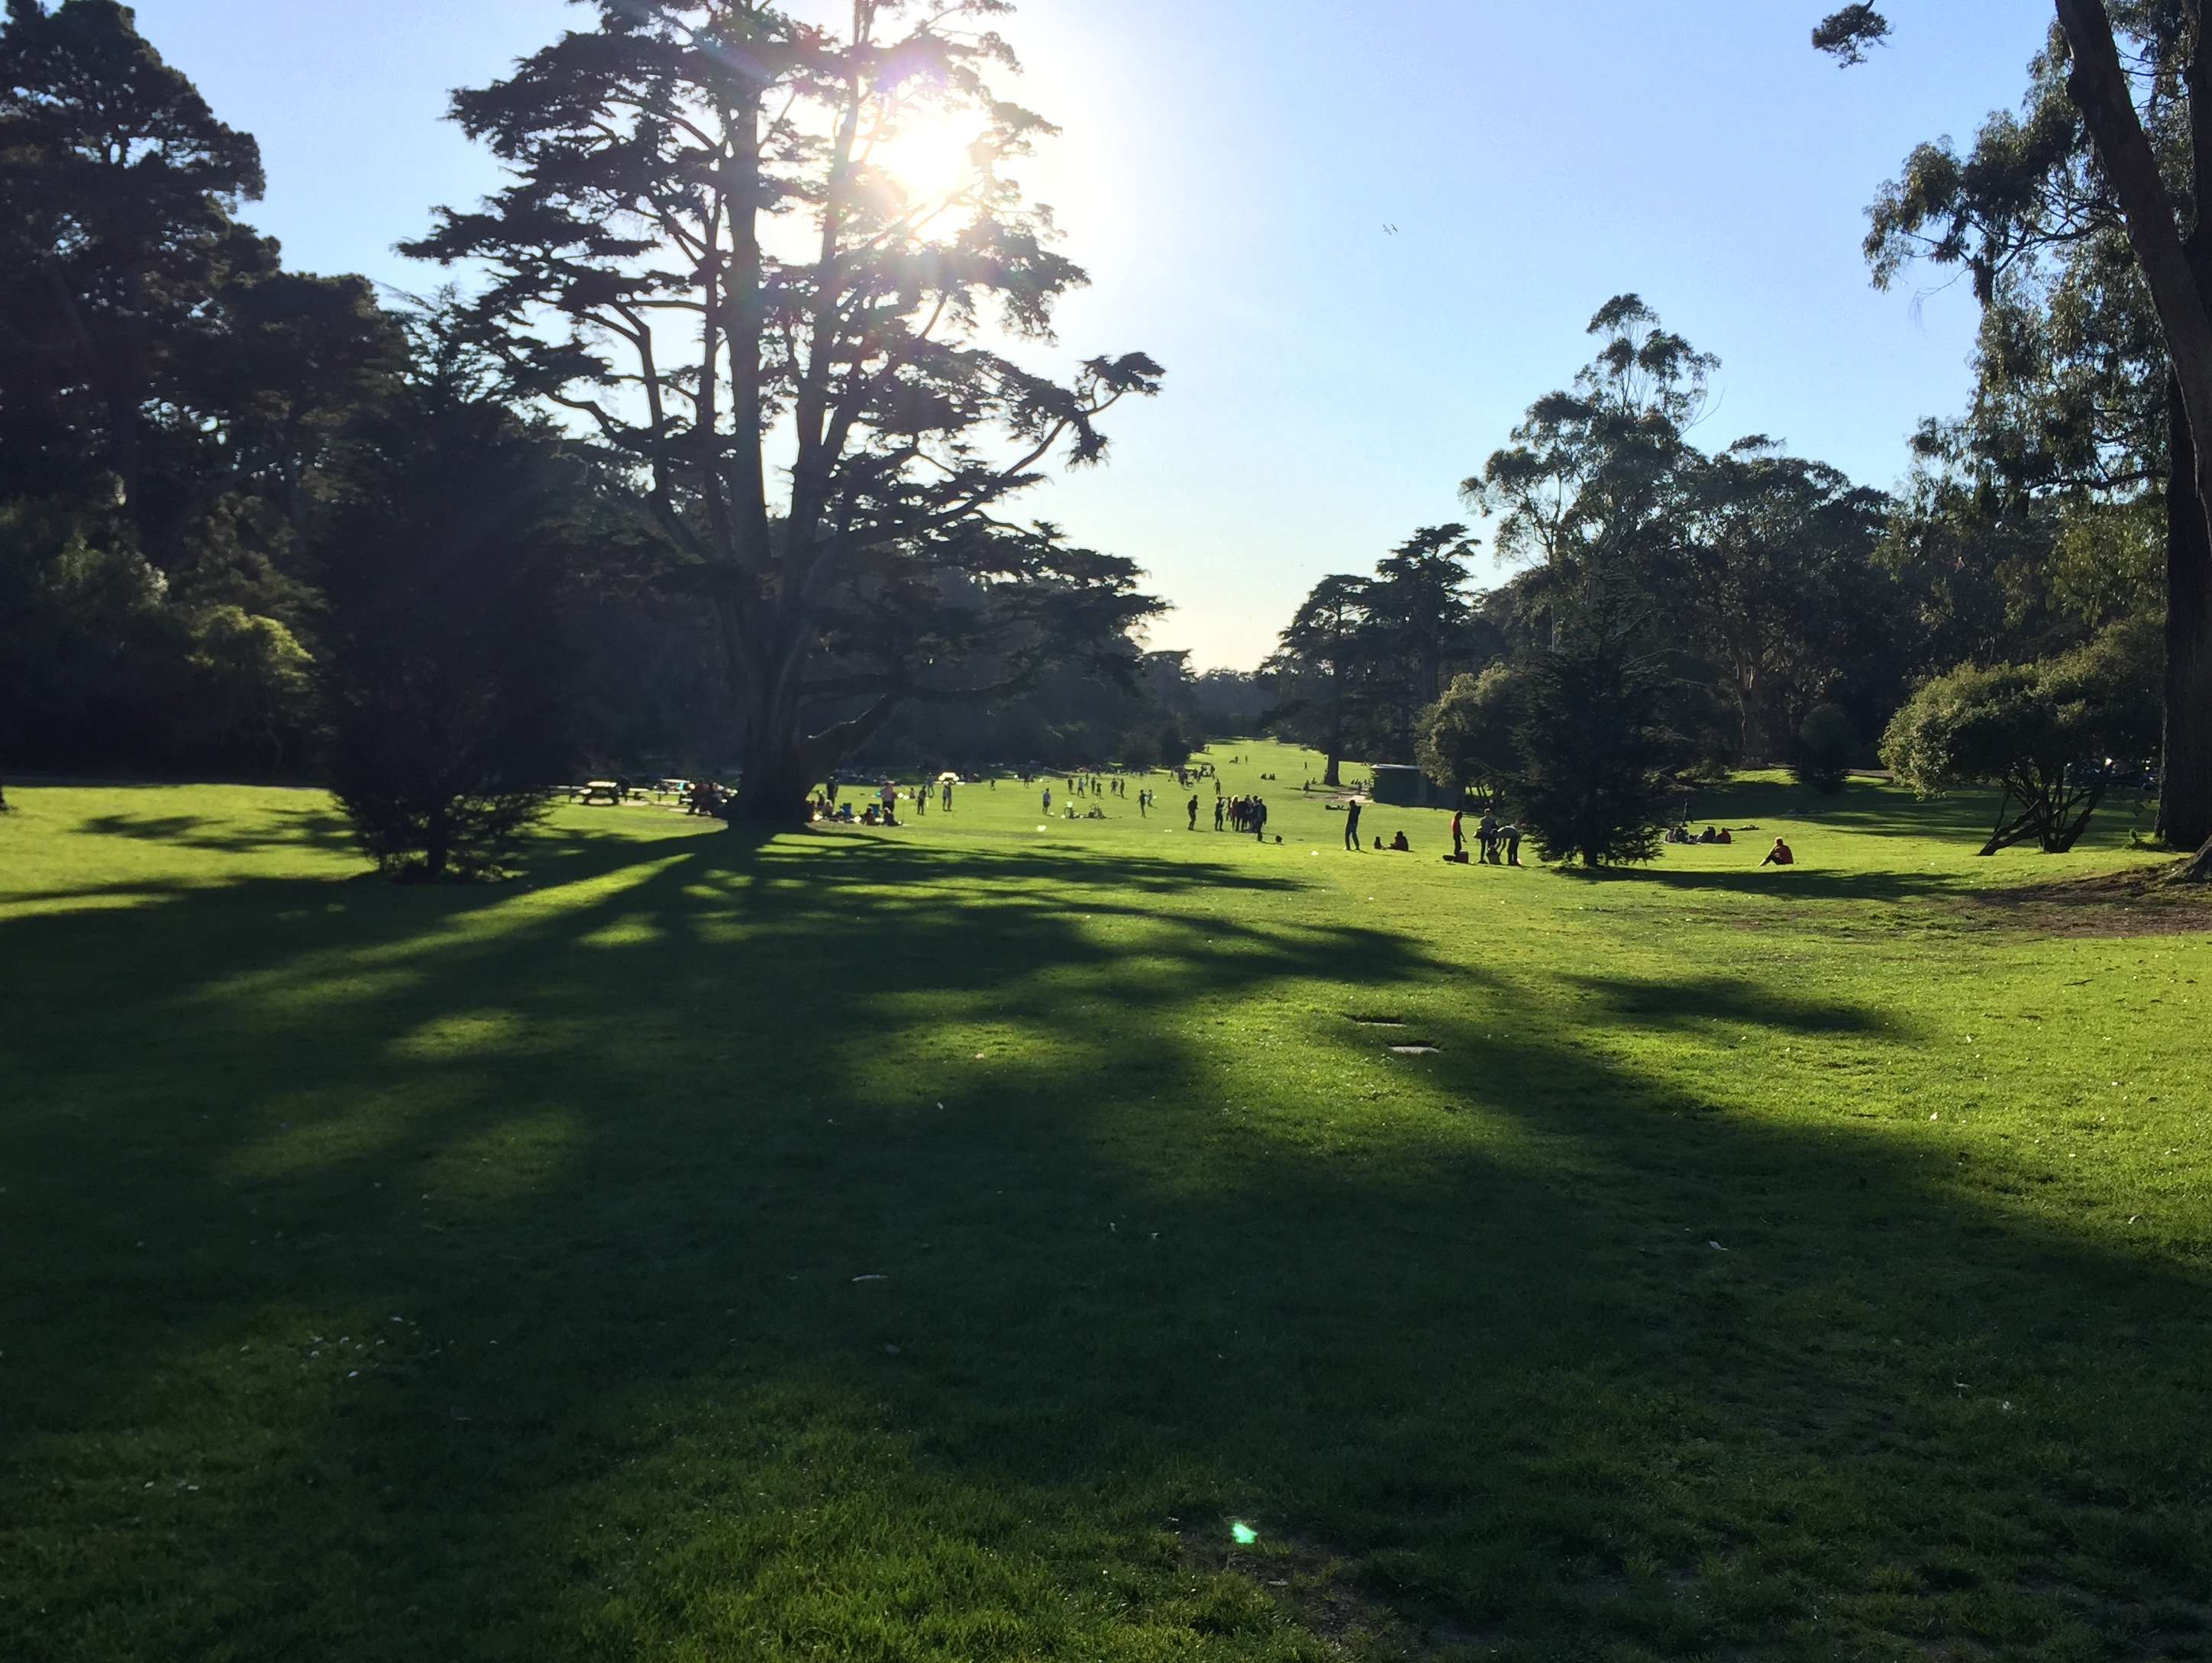 Reasons to visit San Francisco - Golden Gate Park